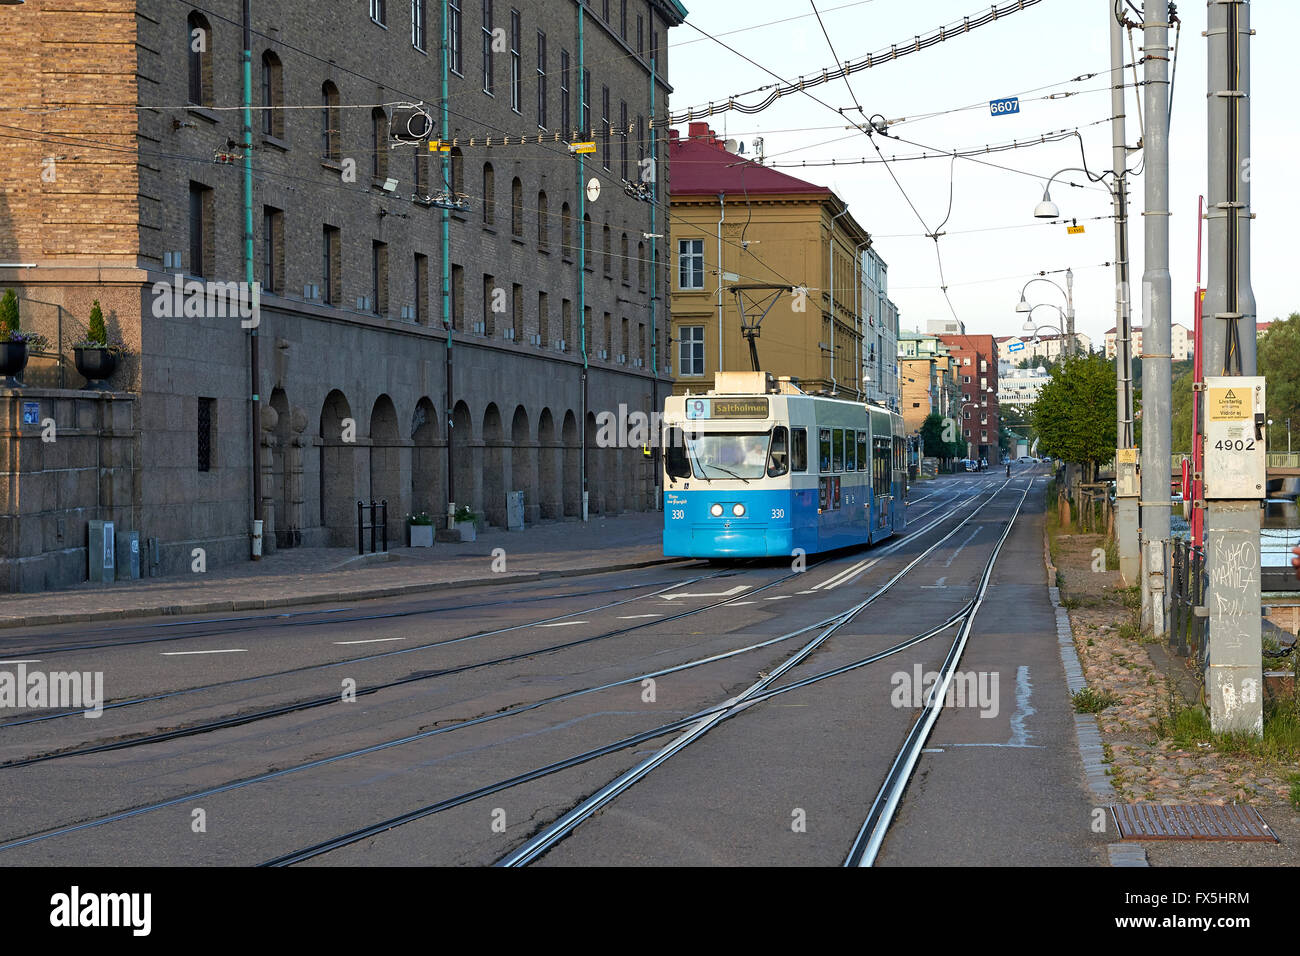 Street view in Gothenburg, Sweden with a blue tram driving - Stock Image